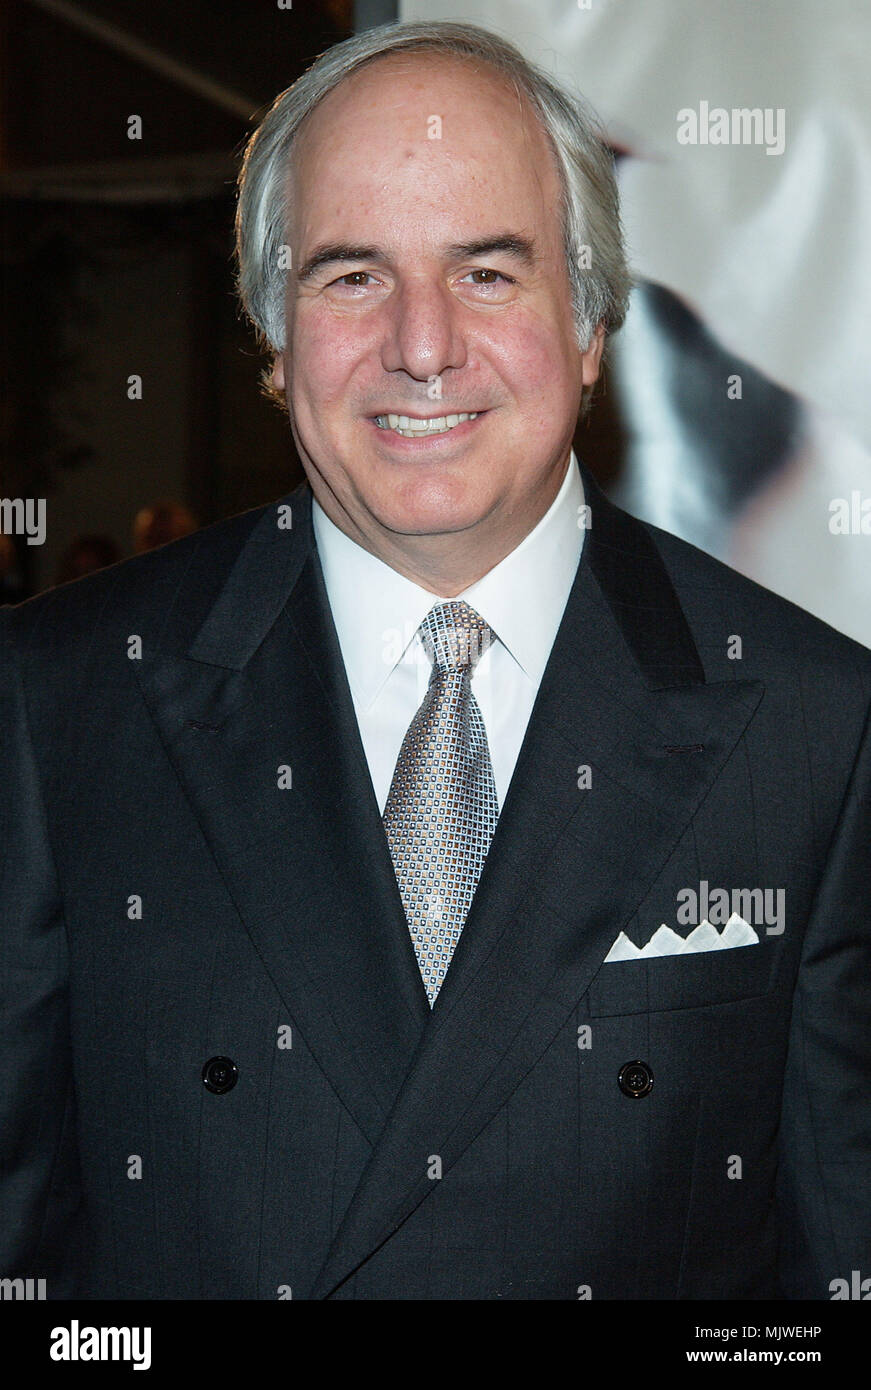 frank abagnale - photo #39